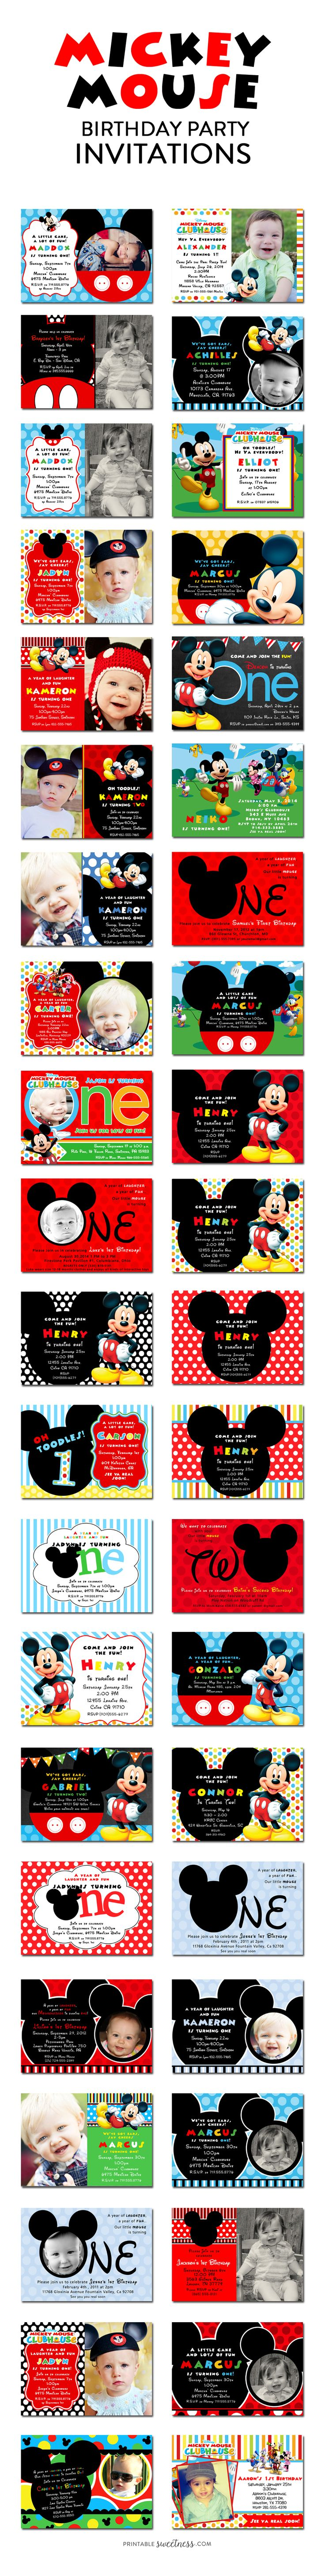 So Many Mickey Mouse Birthday Party Invitations to Choose From!